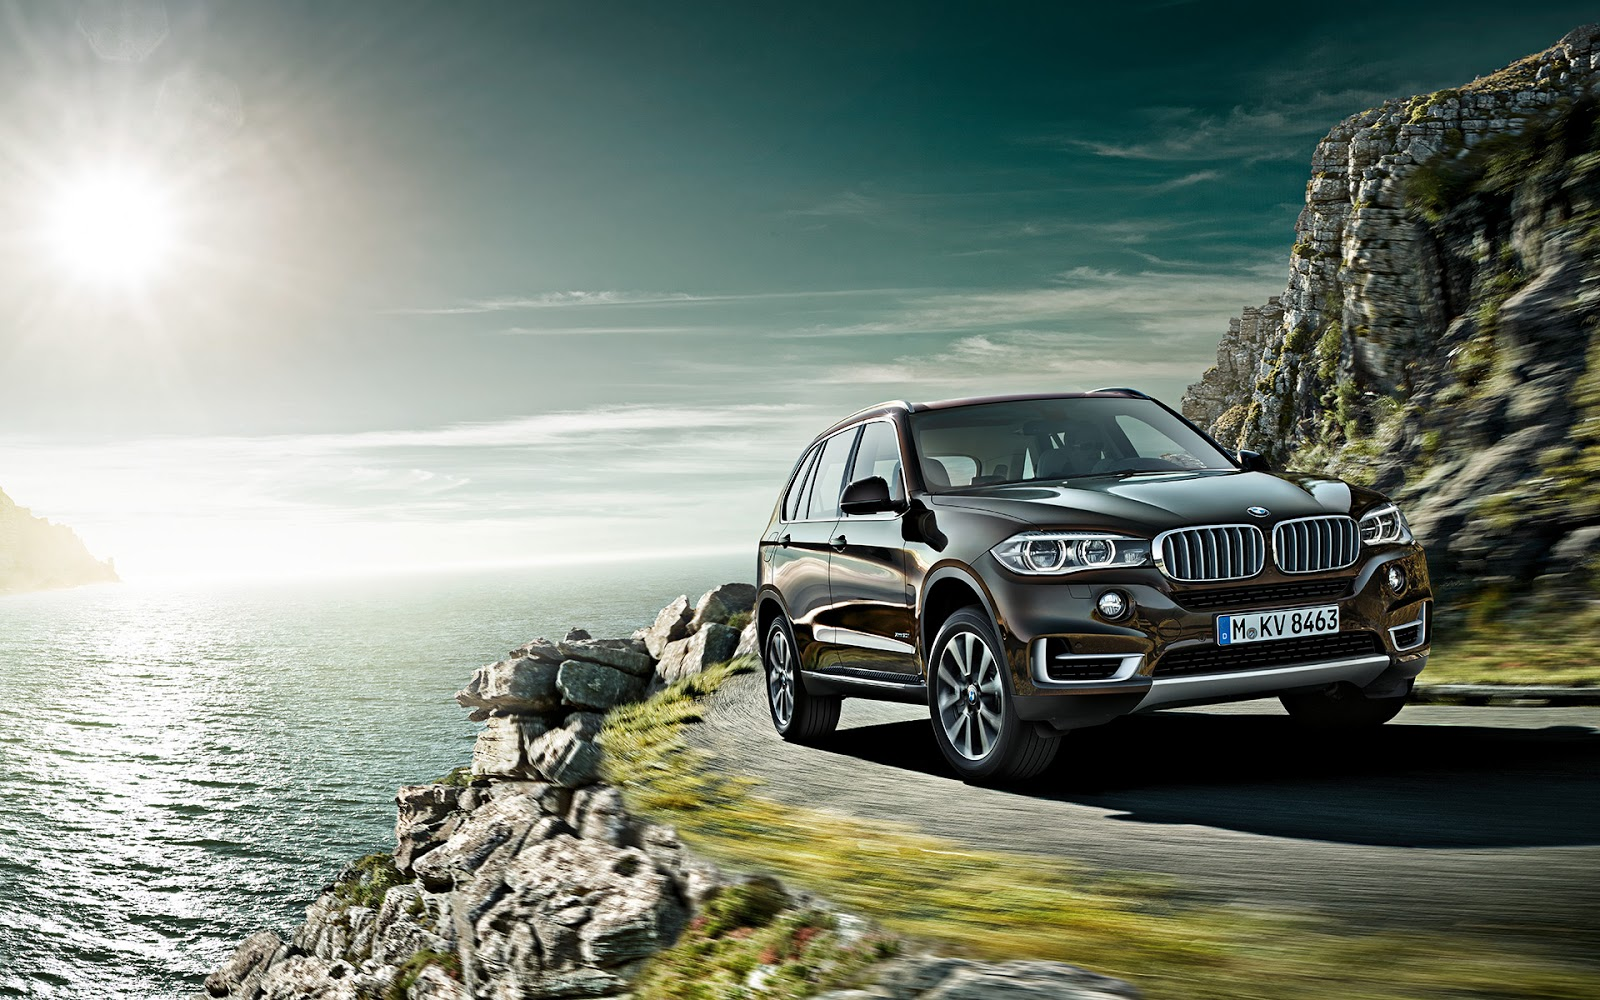 Towncountry bmw mini markham blog f15 2014 bmw x5 wallpapers and inside we have a full gallery of the all new f15 2014 bmw x5 wallpapers also at the very bottom we have included a video of the new x5 in action voltagebd Image collections